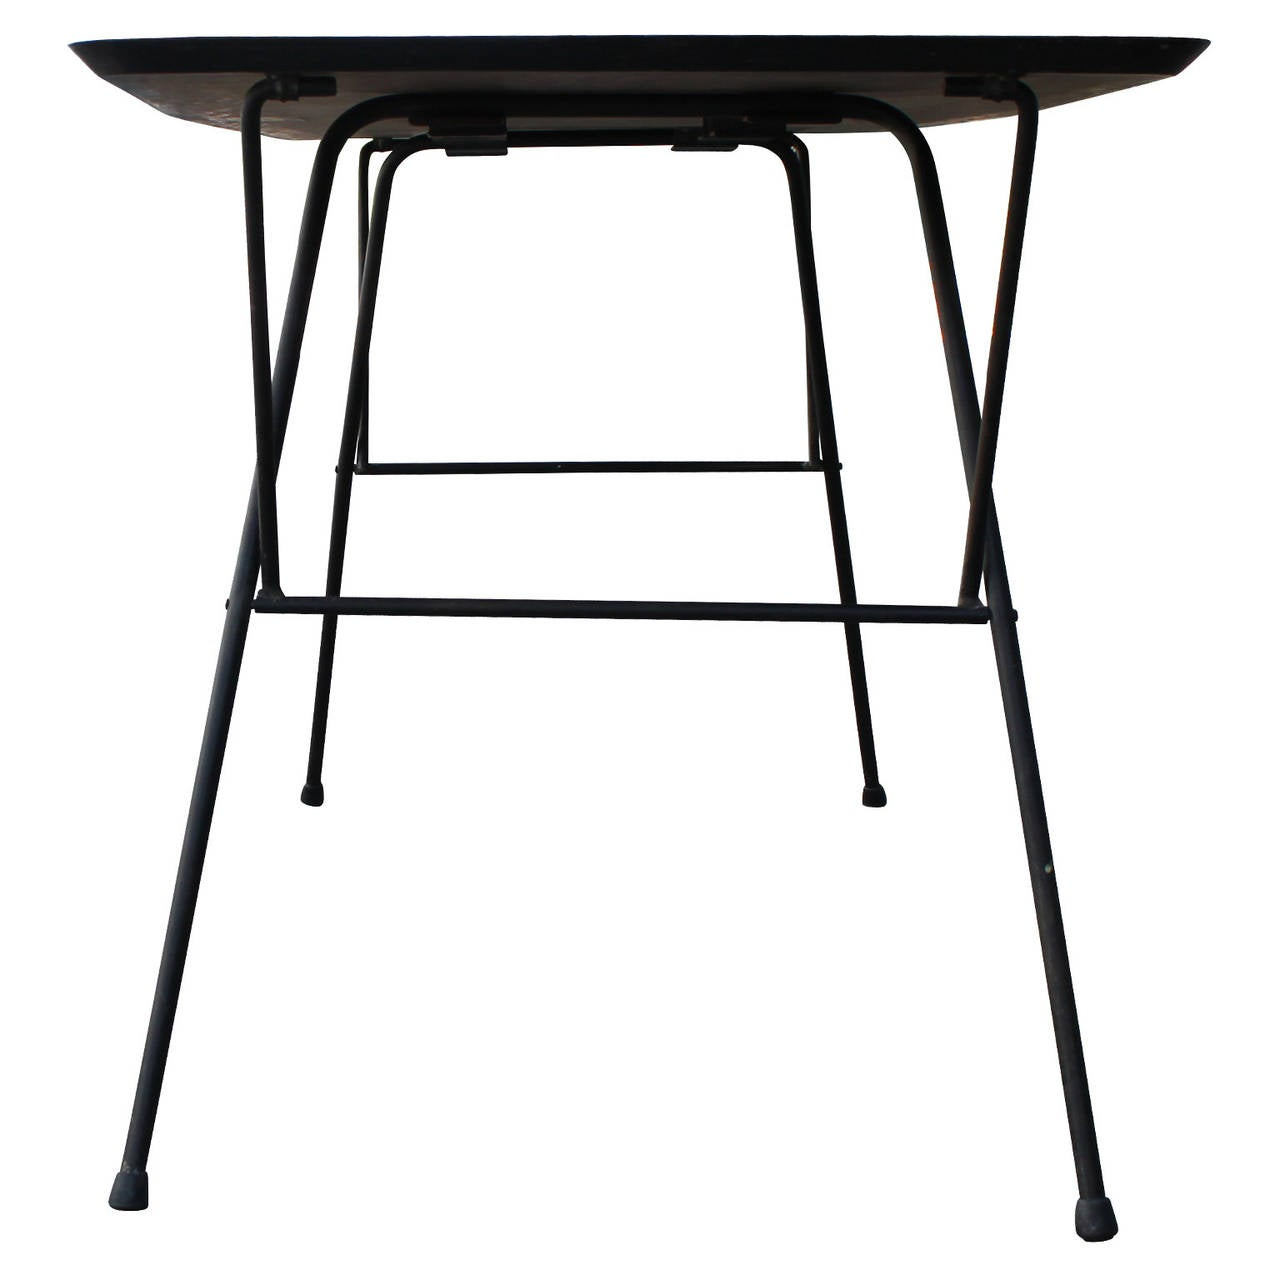 American Mid Century Modern Versi Table By Tepper Meyer For Fred